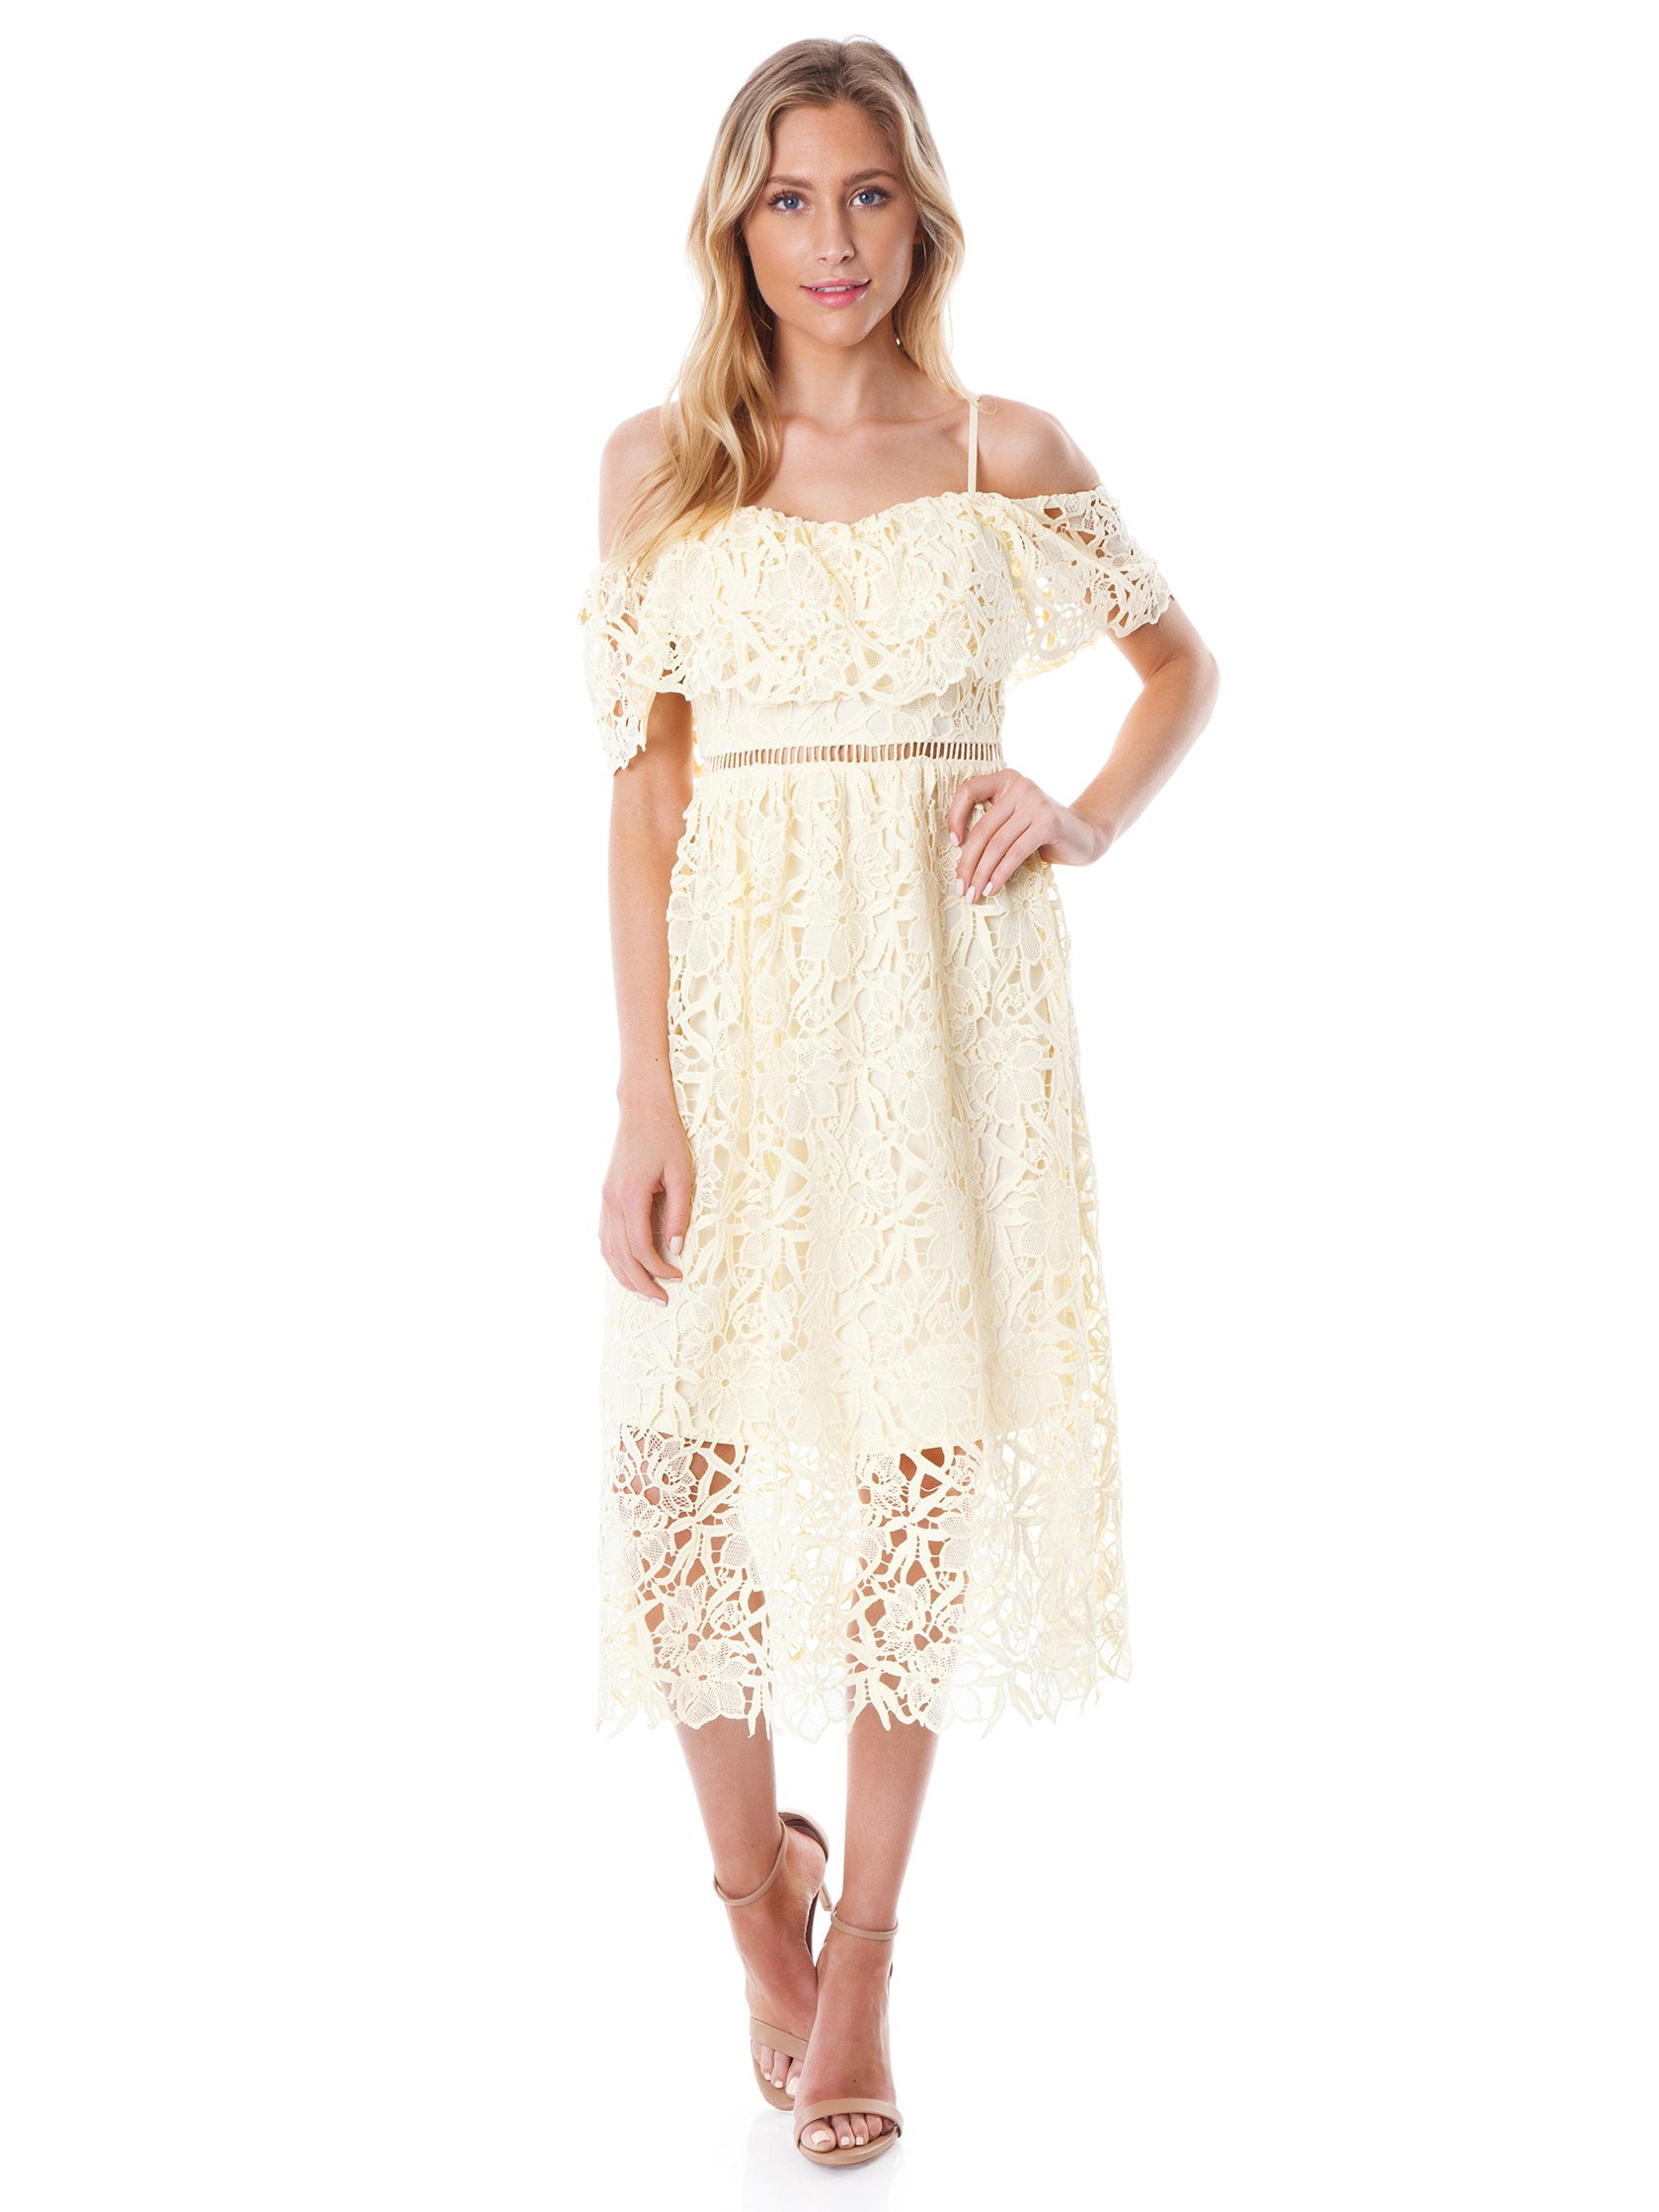 863387a5eb7 Girl outfit in a dress rental from ASTR called Lace Off The Shoulder Midi  Dress